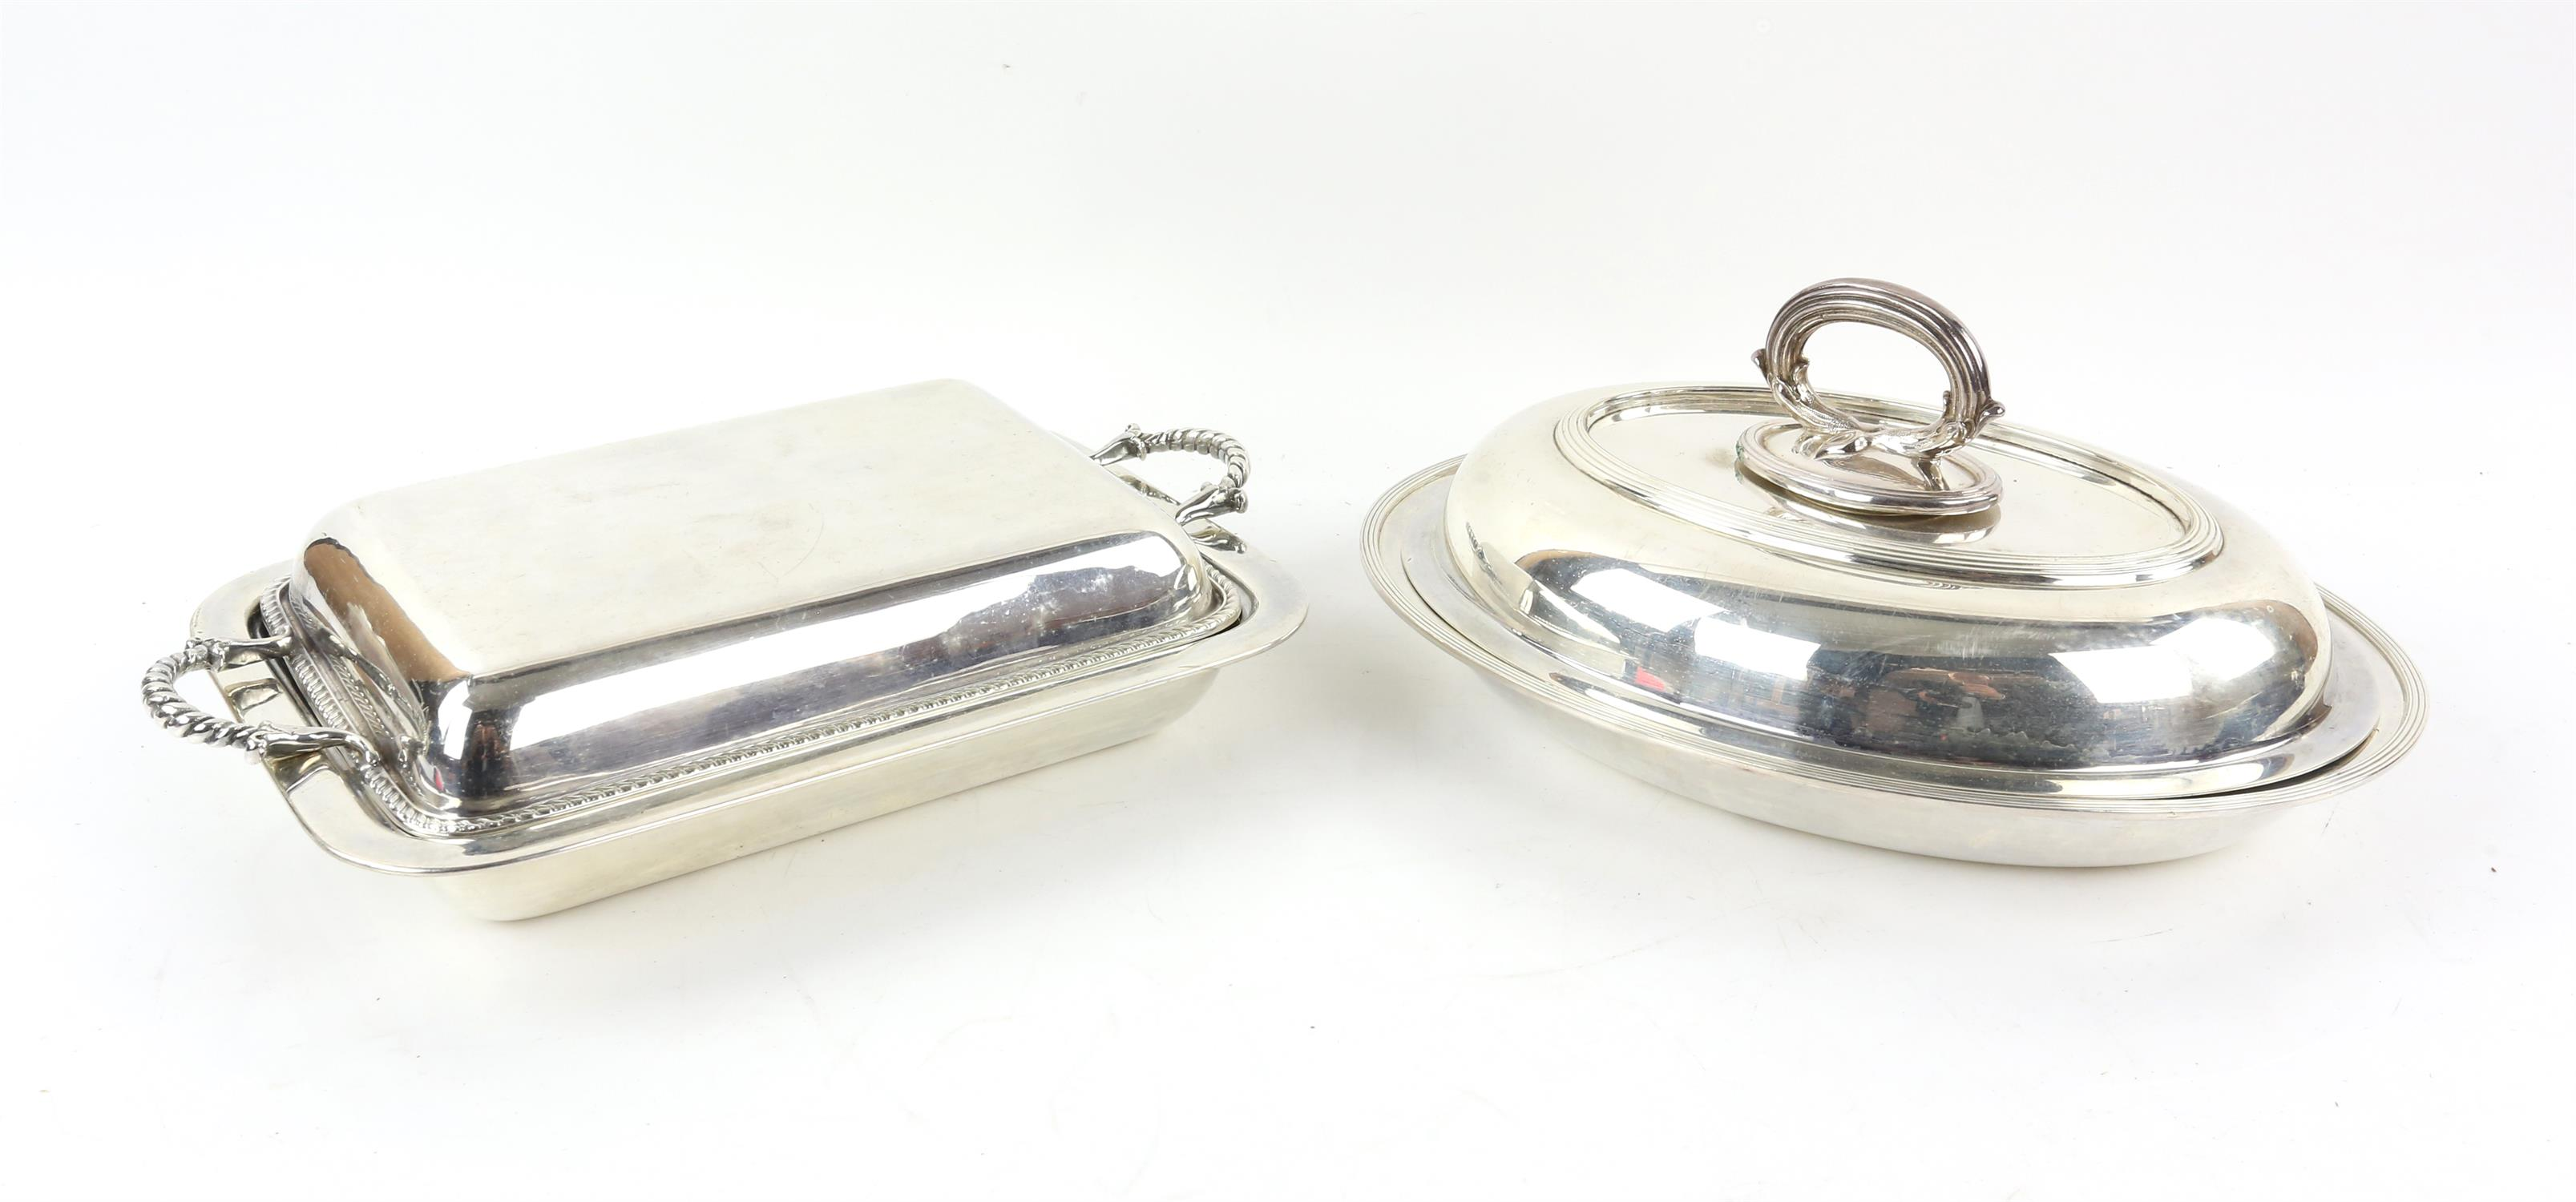 Silver plated twin-handled tray with beaded border, 77cm wide, pair of bottle holders, - Image 4 of 5